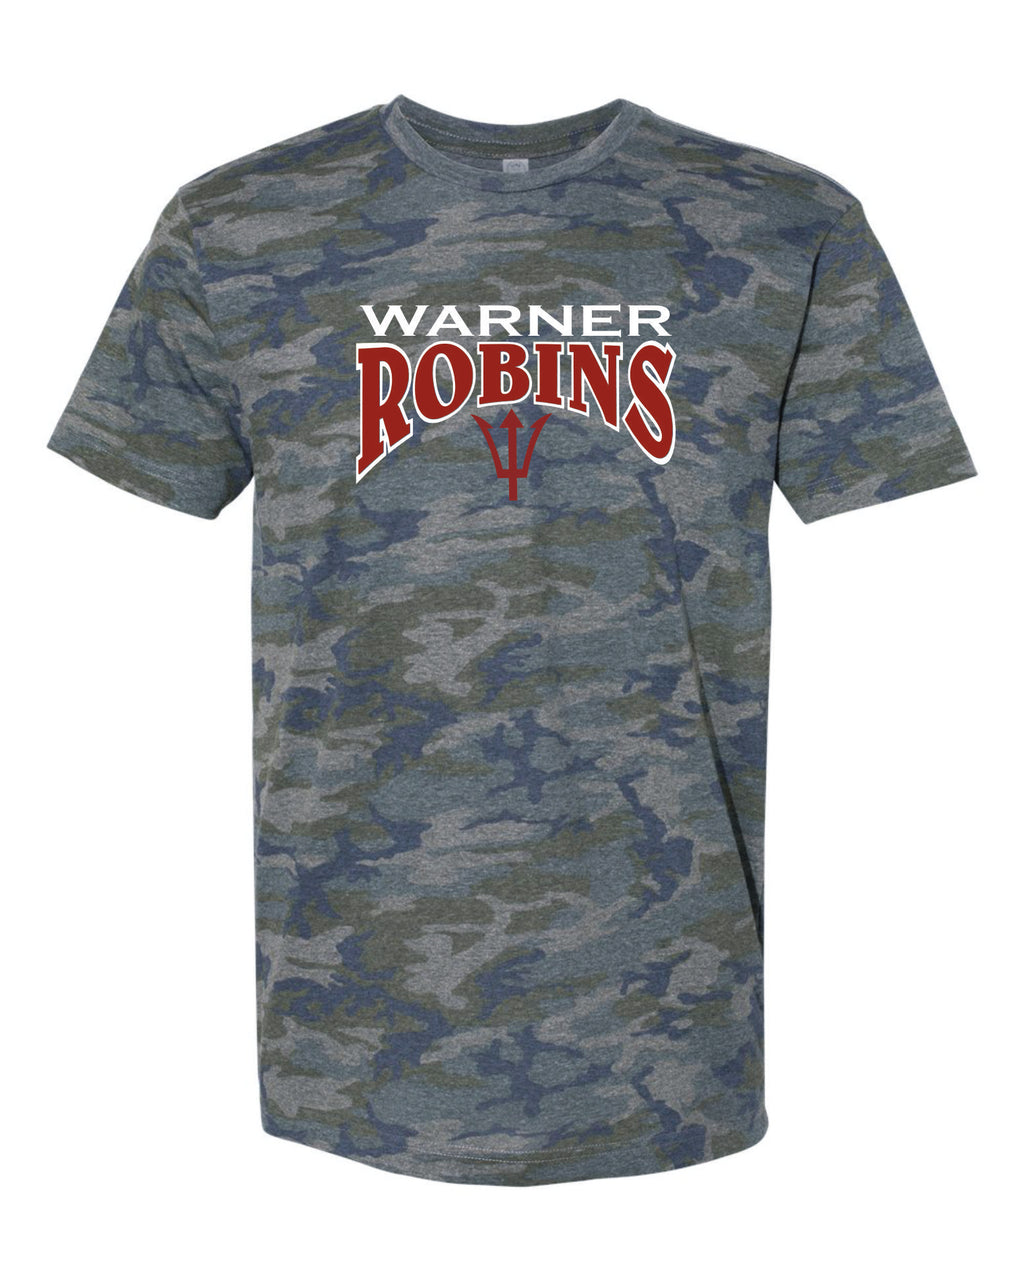 Demons camo team shirt